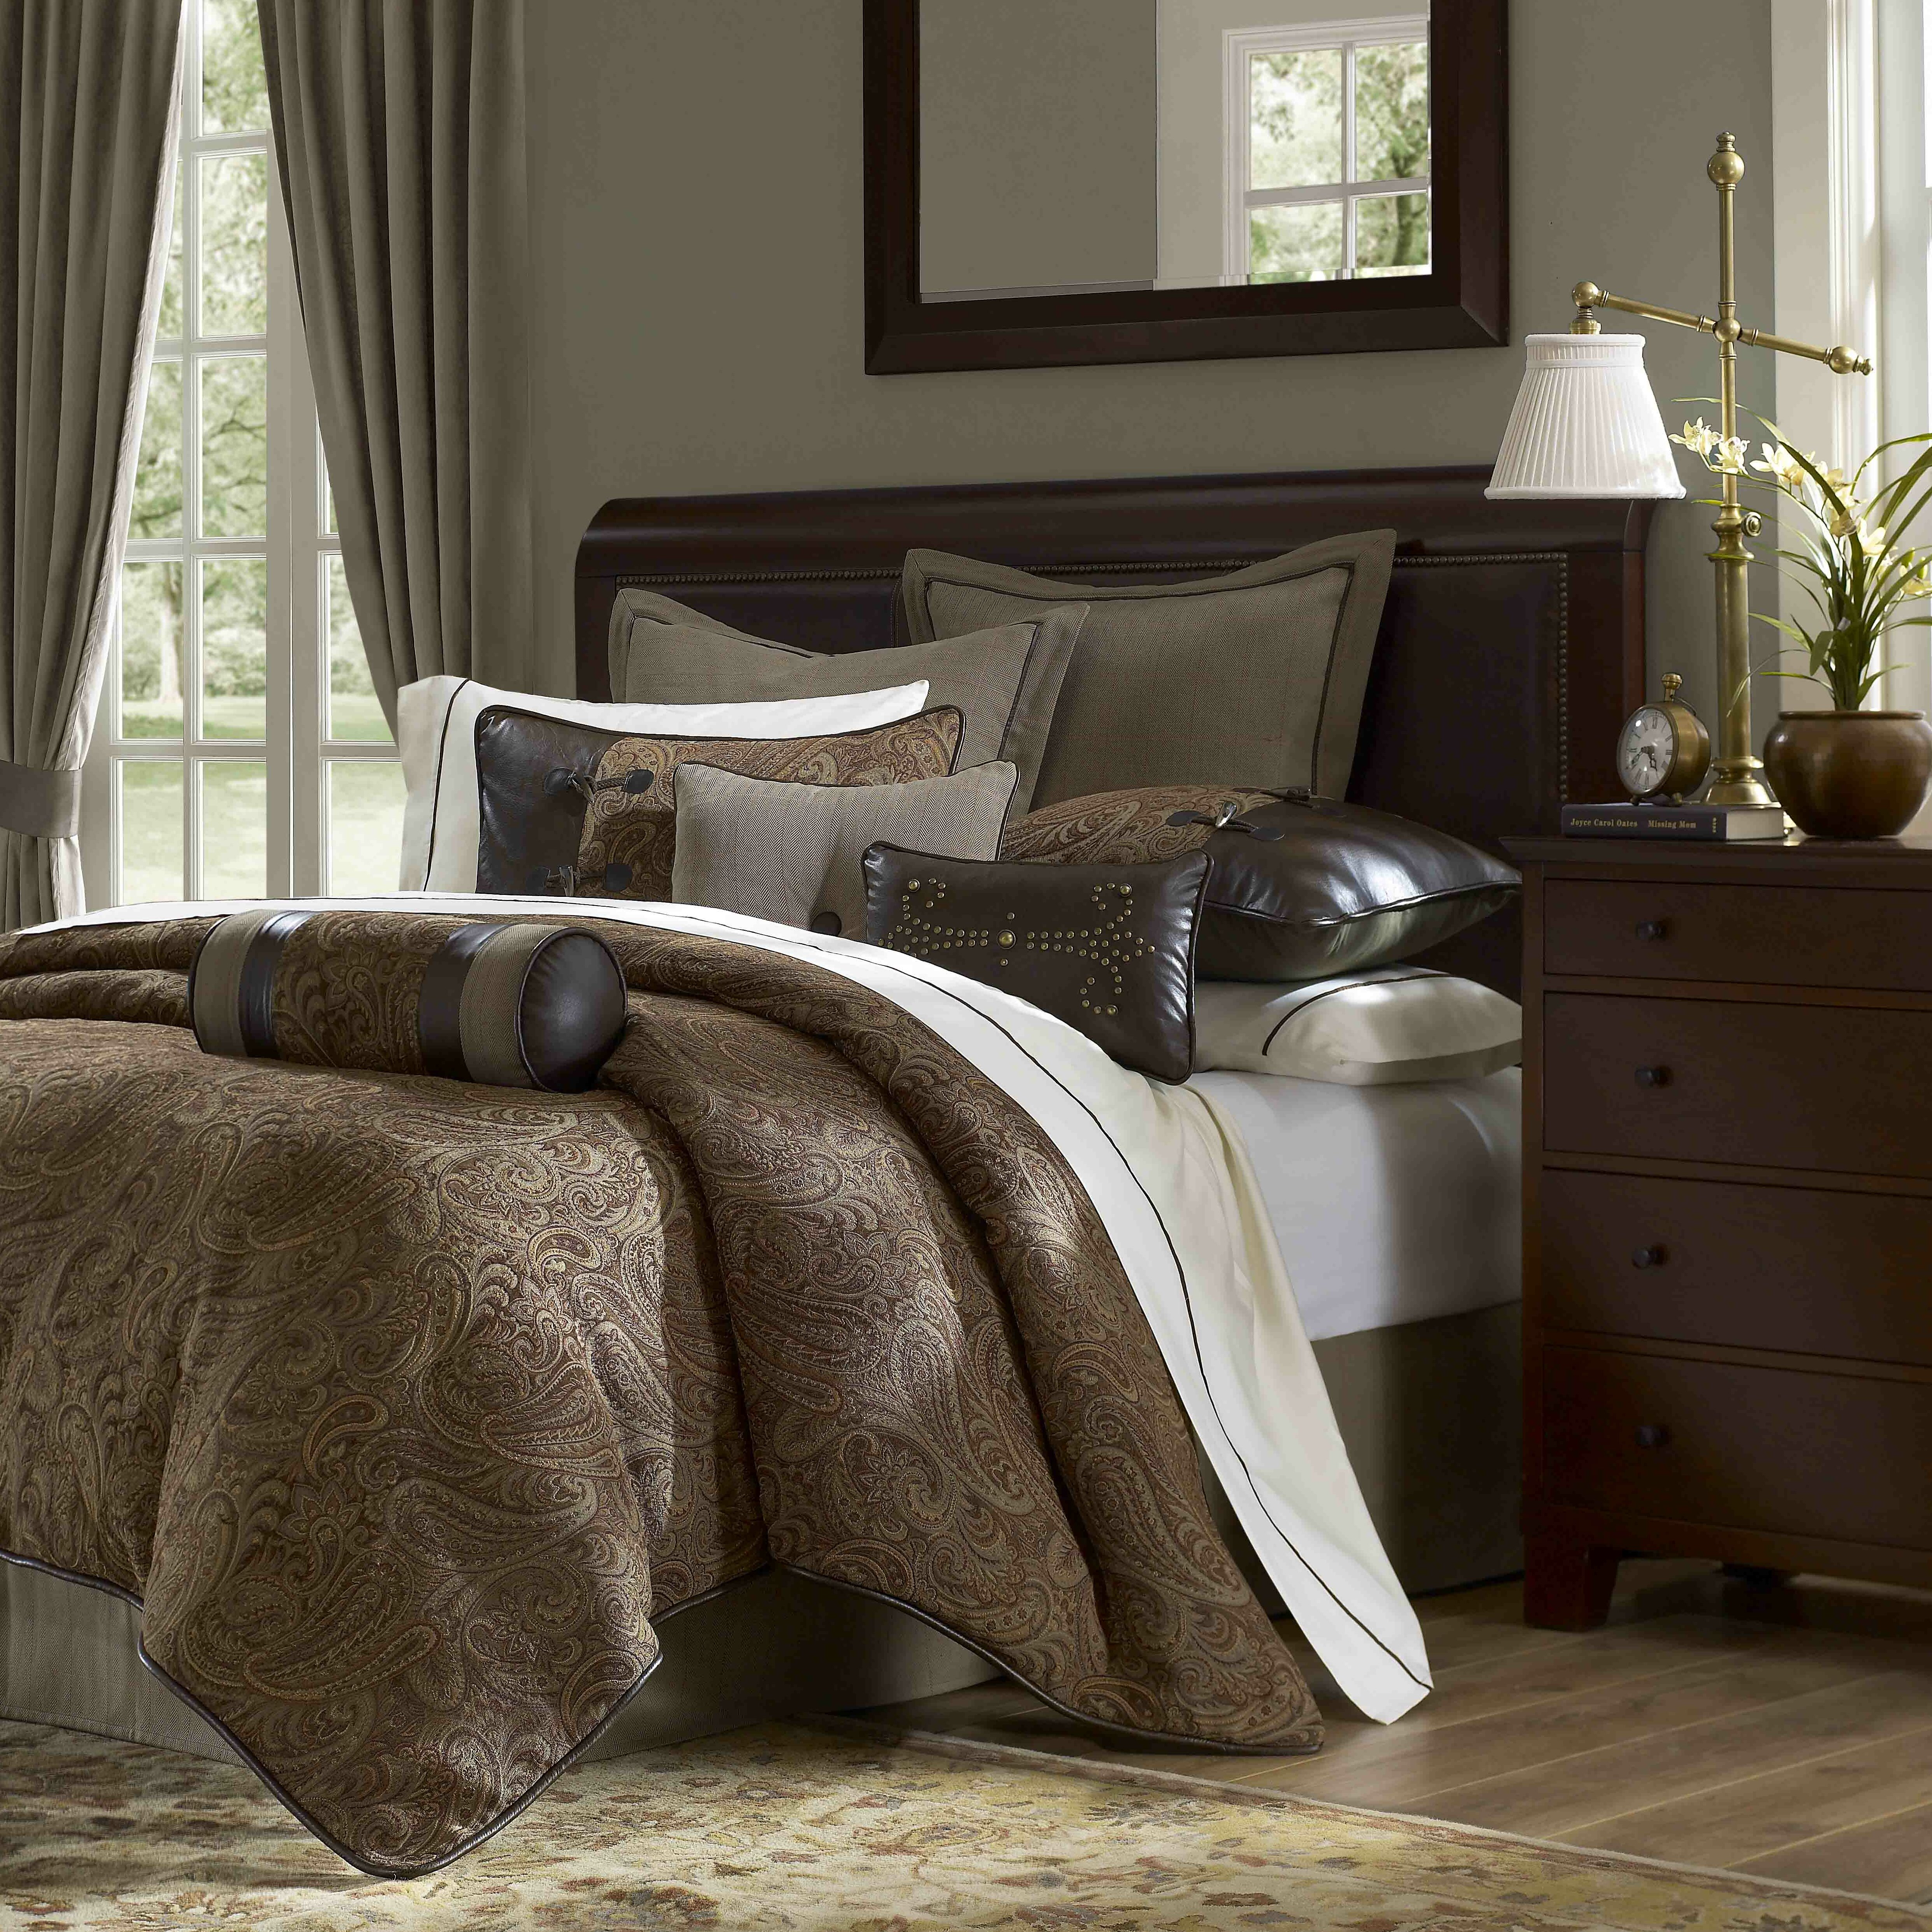 Top 30 Masculine Bedroom Part 2: Hampton Hill Drummond 10 Piece Comforter Set & Reviews